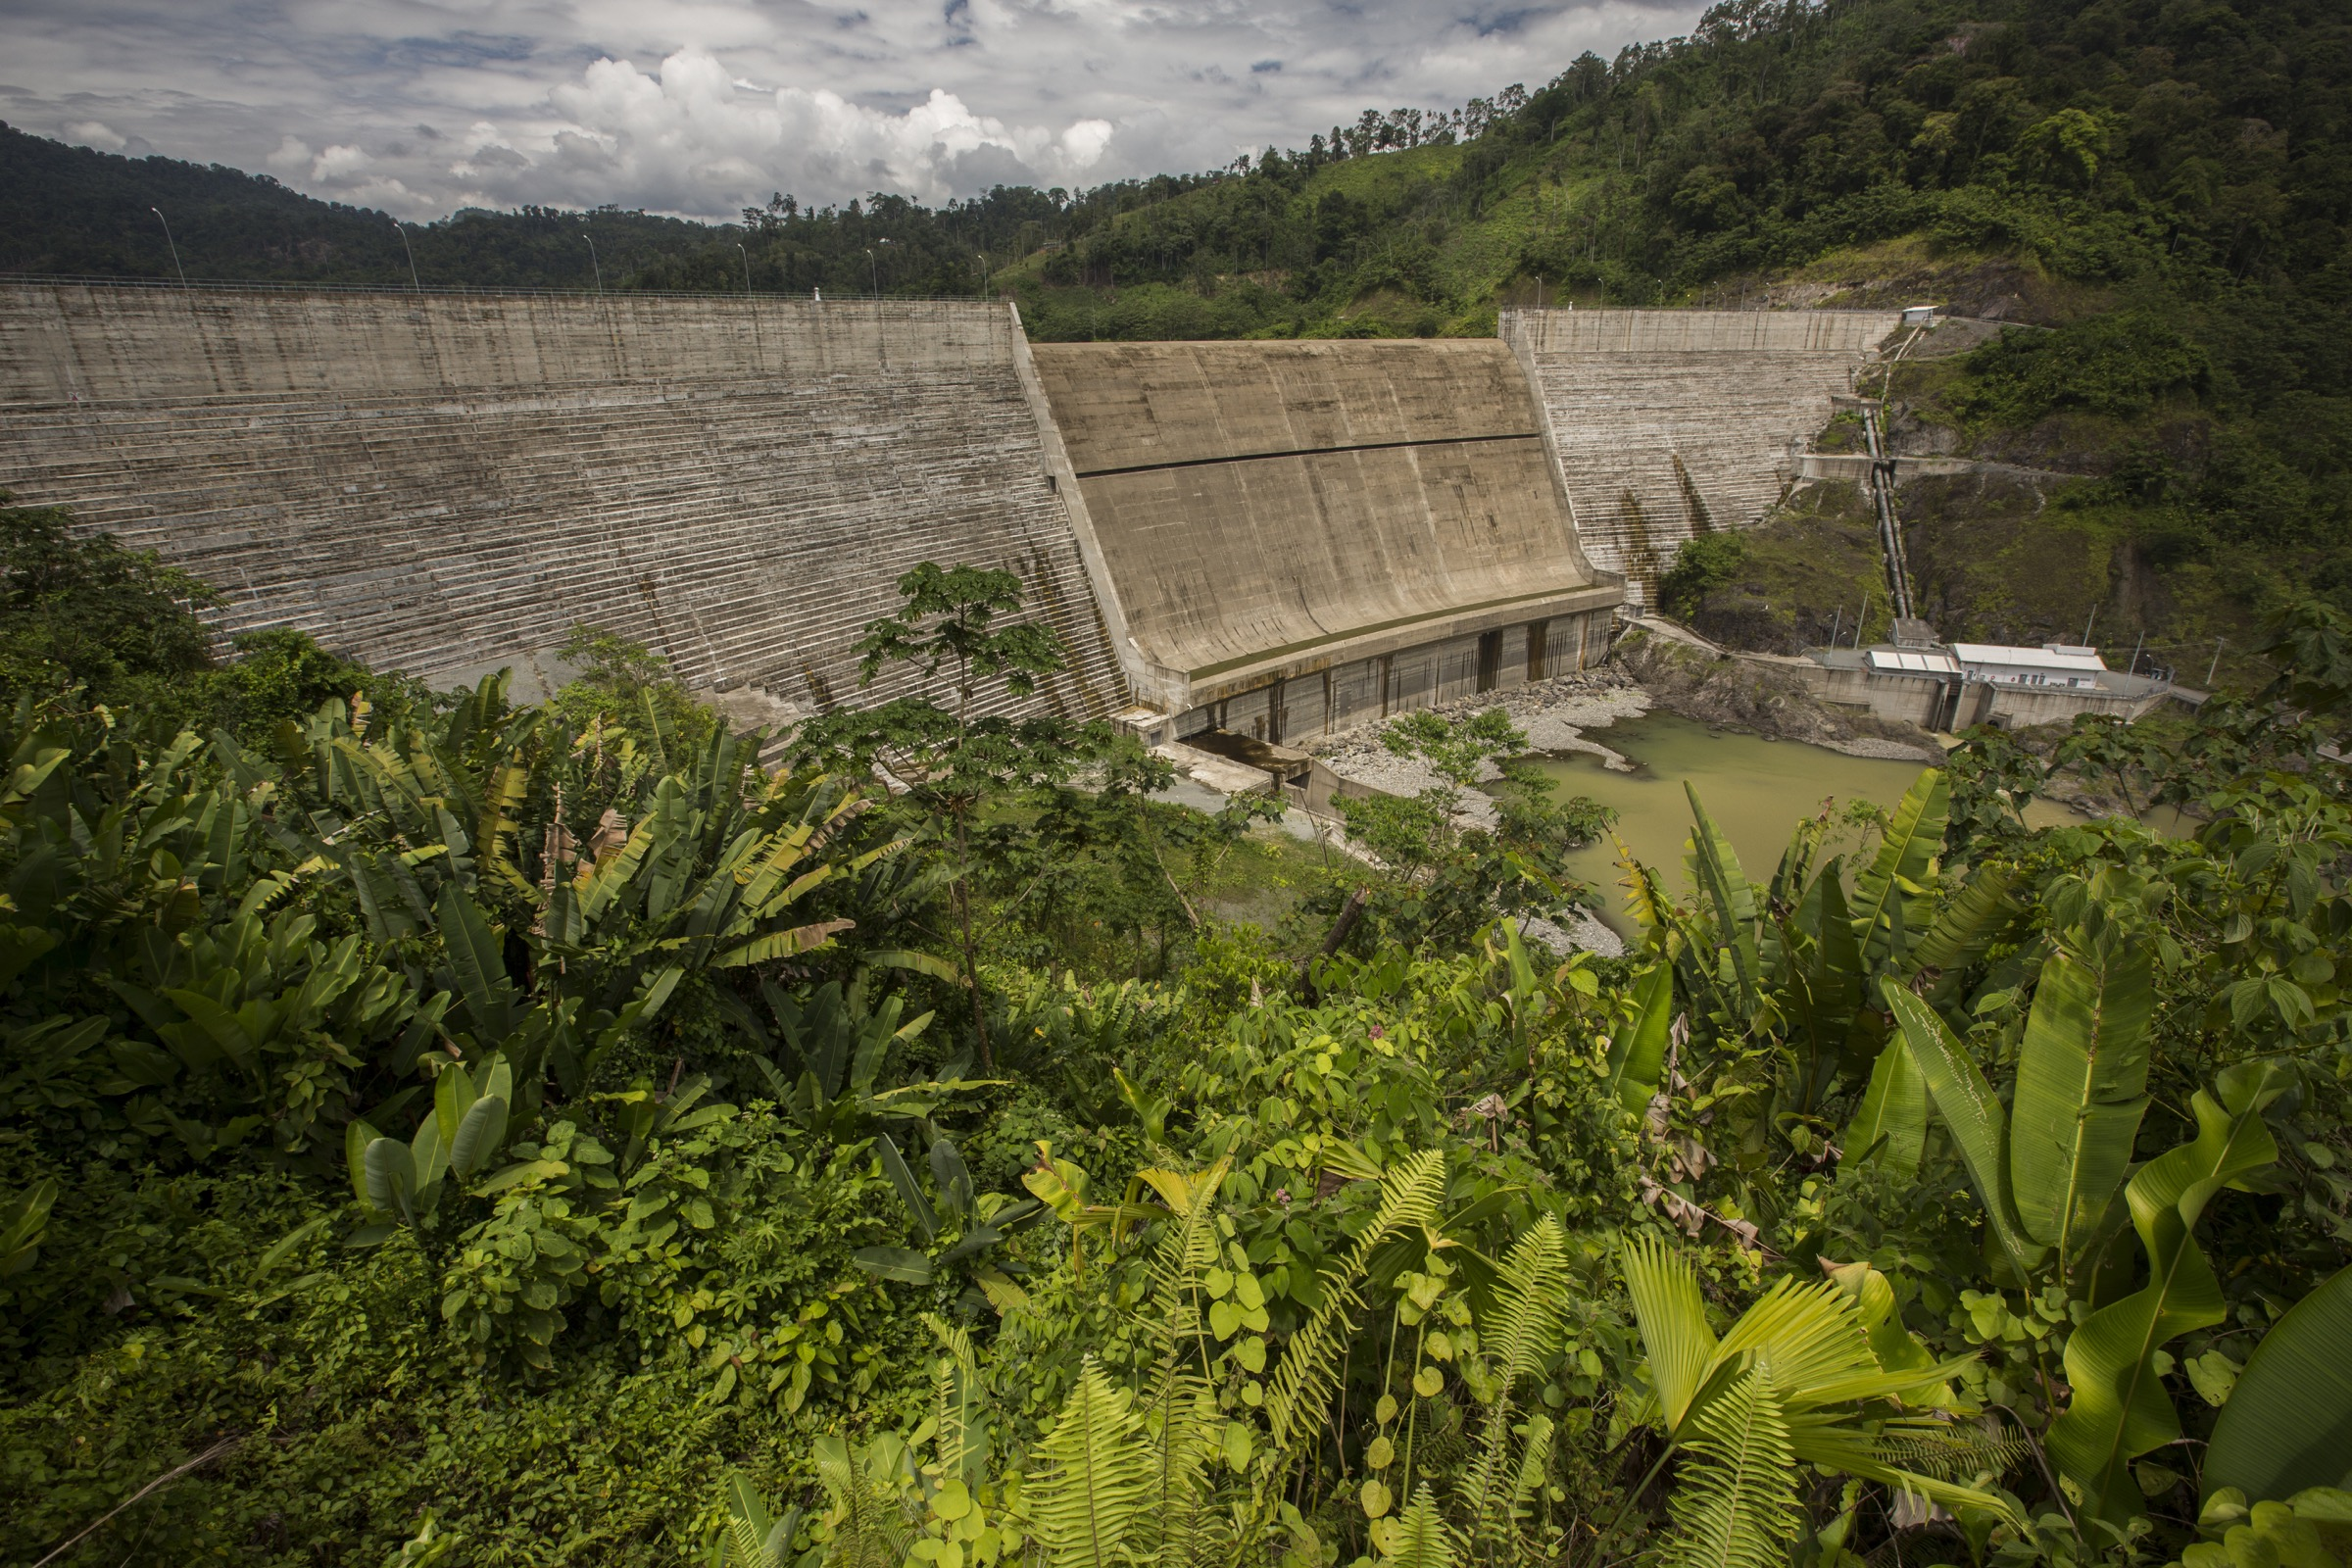 The 325-foot-high Changuinola I Dam forced the relocation of more than 1,000 Indigenous people near La Amistad World Heritage Site, a protected area that straddles Costa Rica's border with Panama.